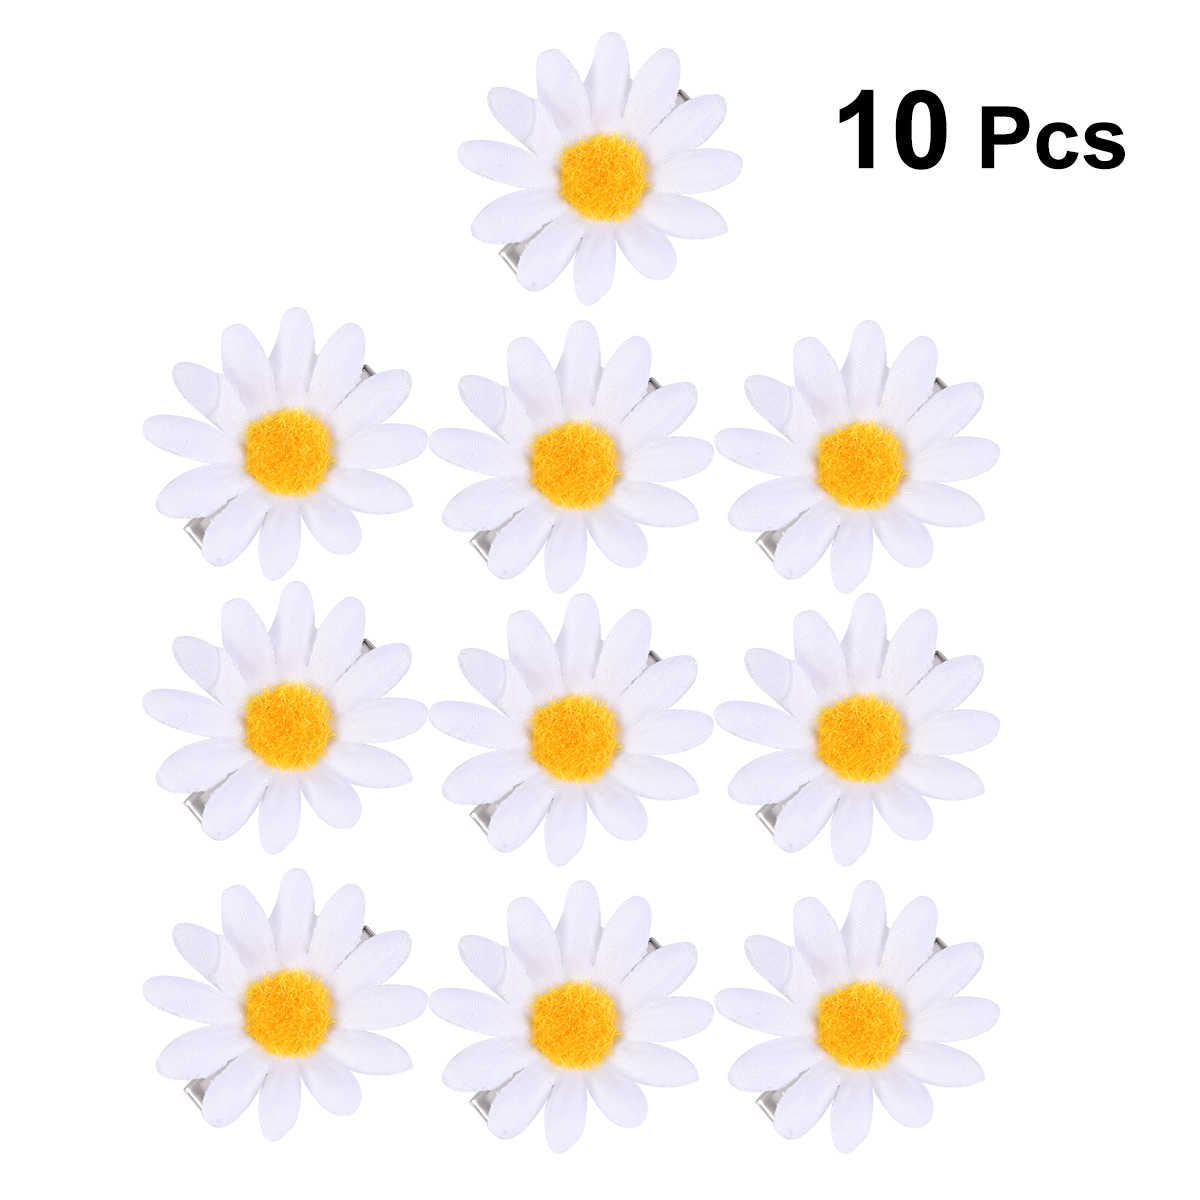 10pcs Hair Clips Cute Sunflower Daisy Decorative Hair Accessories Hair Barrettes Hair Pins for Women Ladies Girls